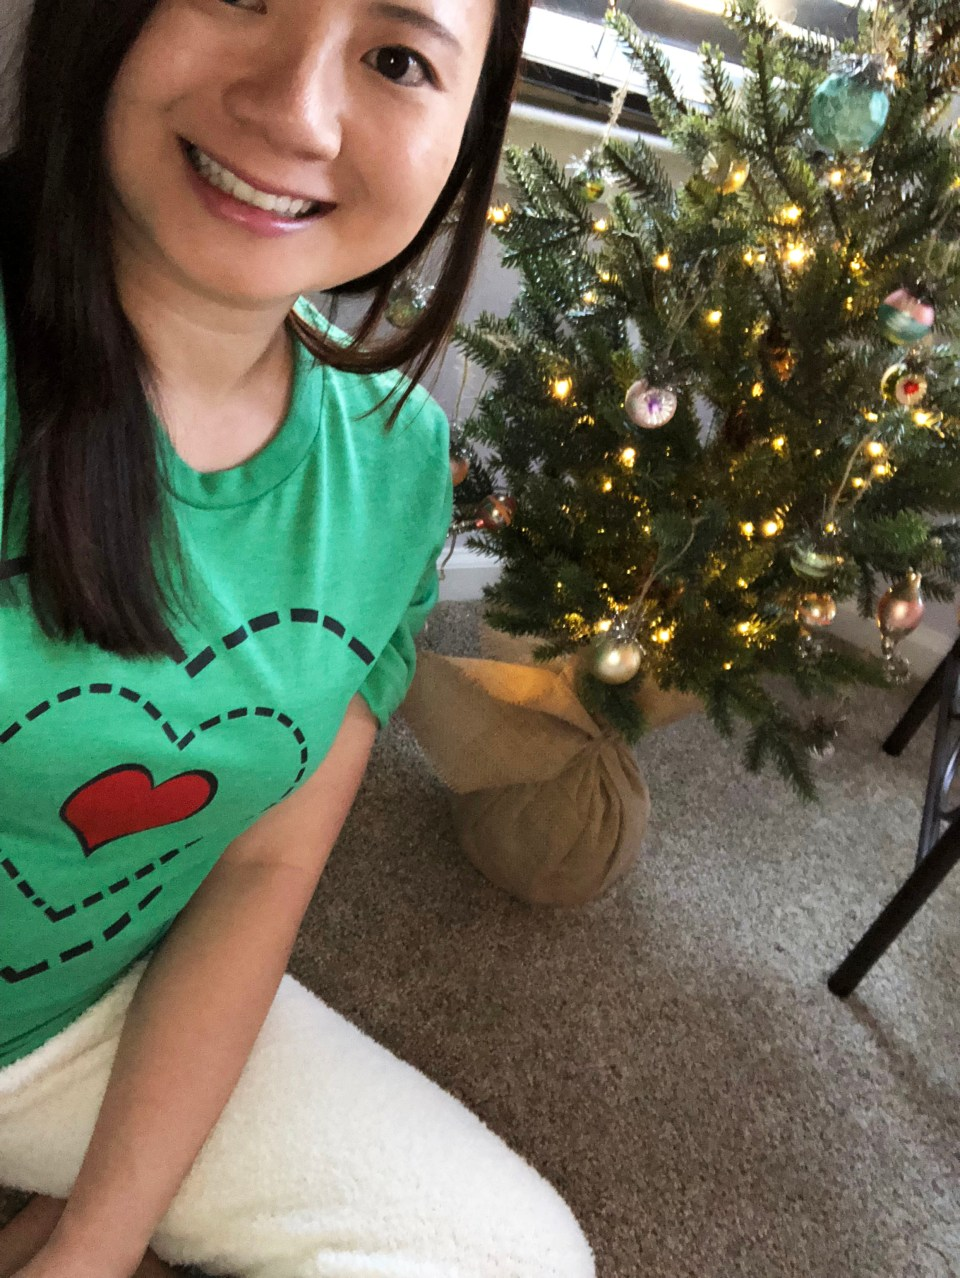 Grinch - Heart Two Sizes Too Small Tee + Teddy Leggings 2